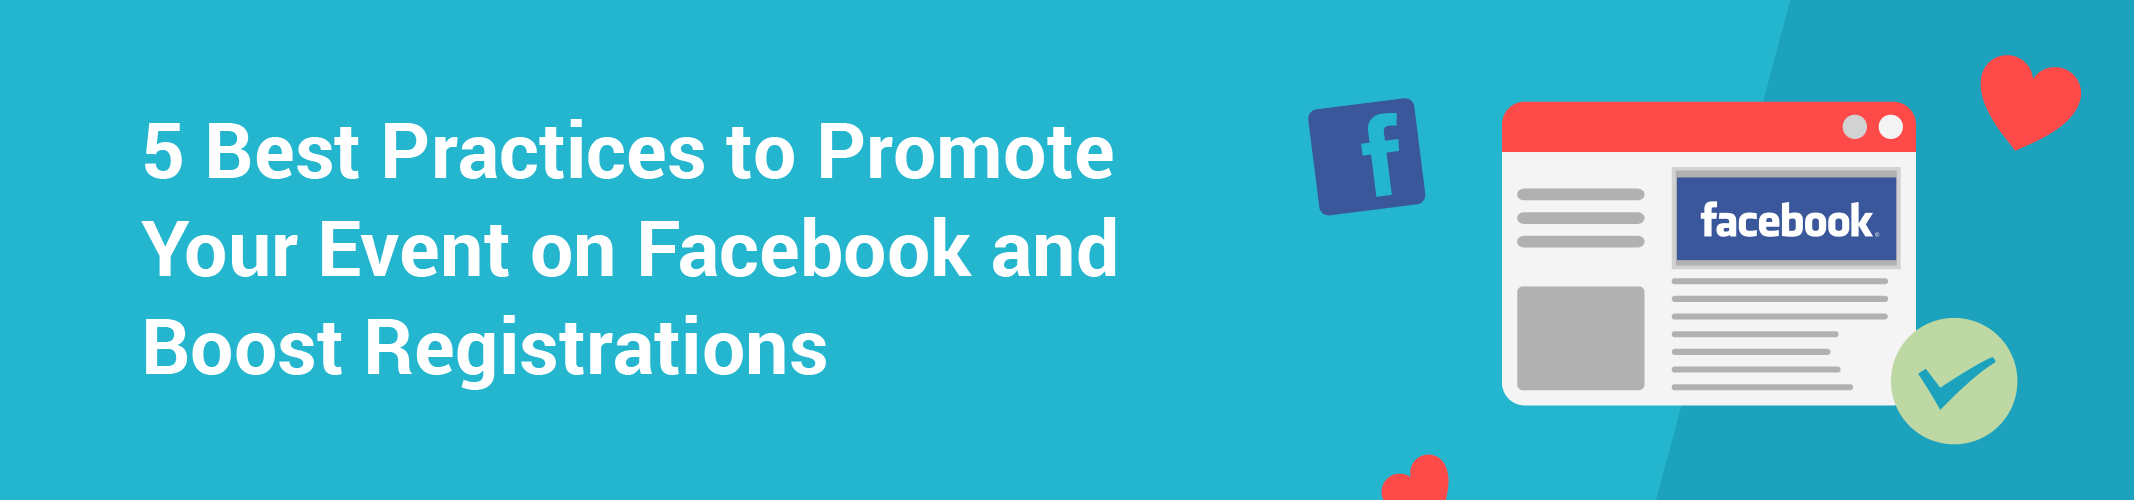 5 Best Practices to Promote Your Event on Facebook and Boost registrations_header_charityhowto